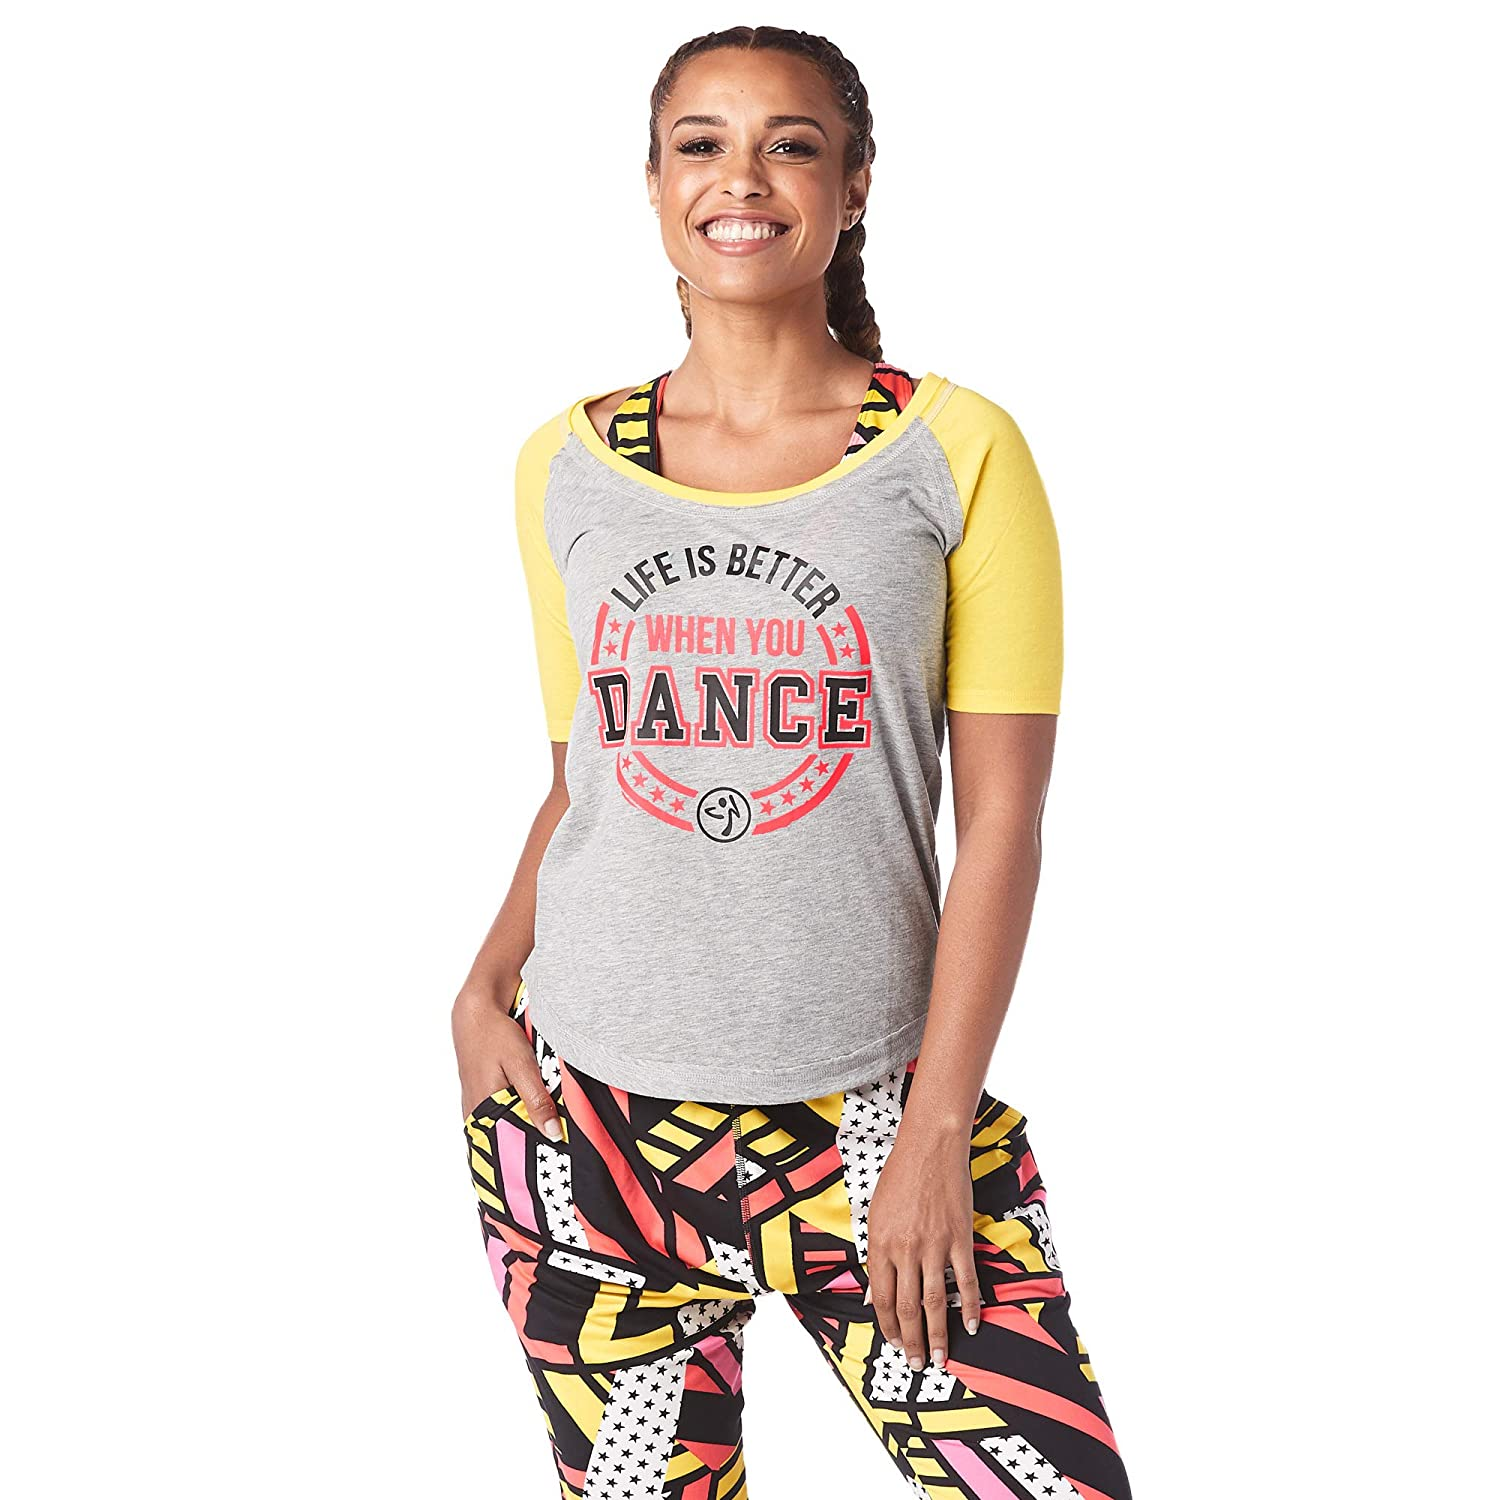 Zumba Womens Athletic Workout Cold Shoulder Tops for Women Fashion Print Design Tee Shirt Short Sleeve AthleticWorkout Cold Shoulder Tops for Women Fashion Print Design Tee Shirt